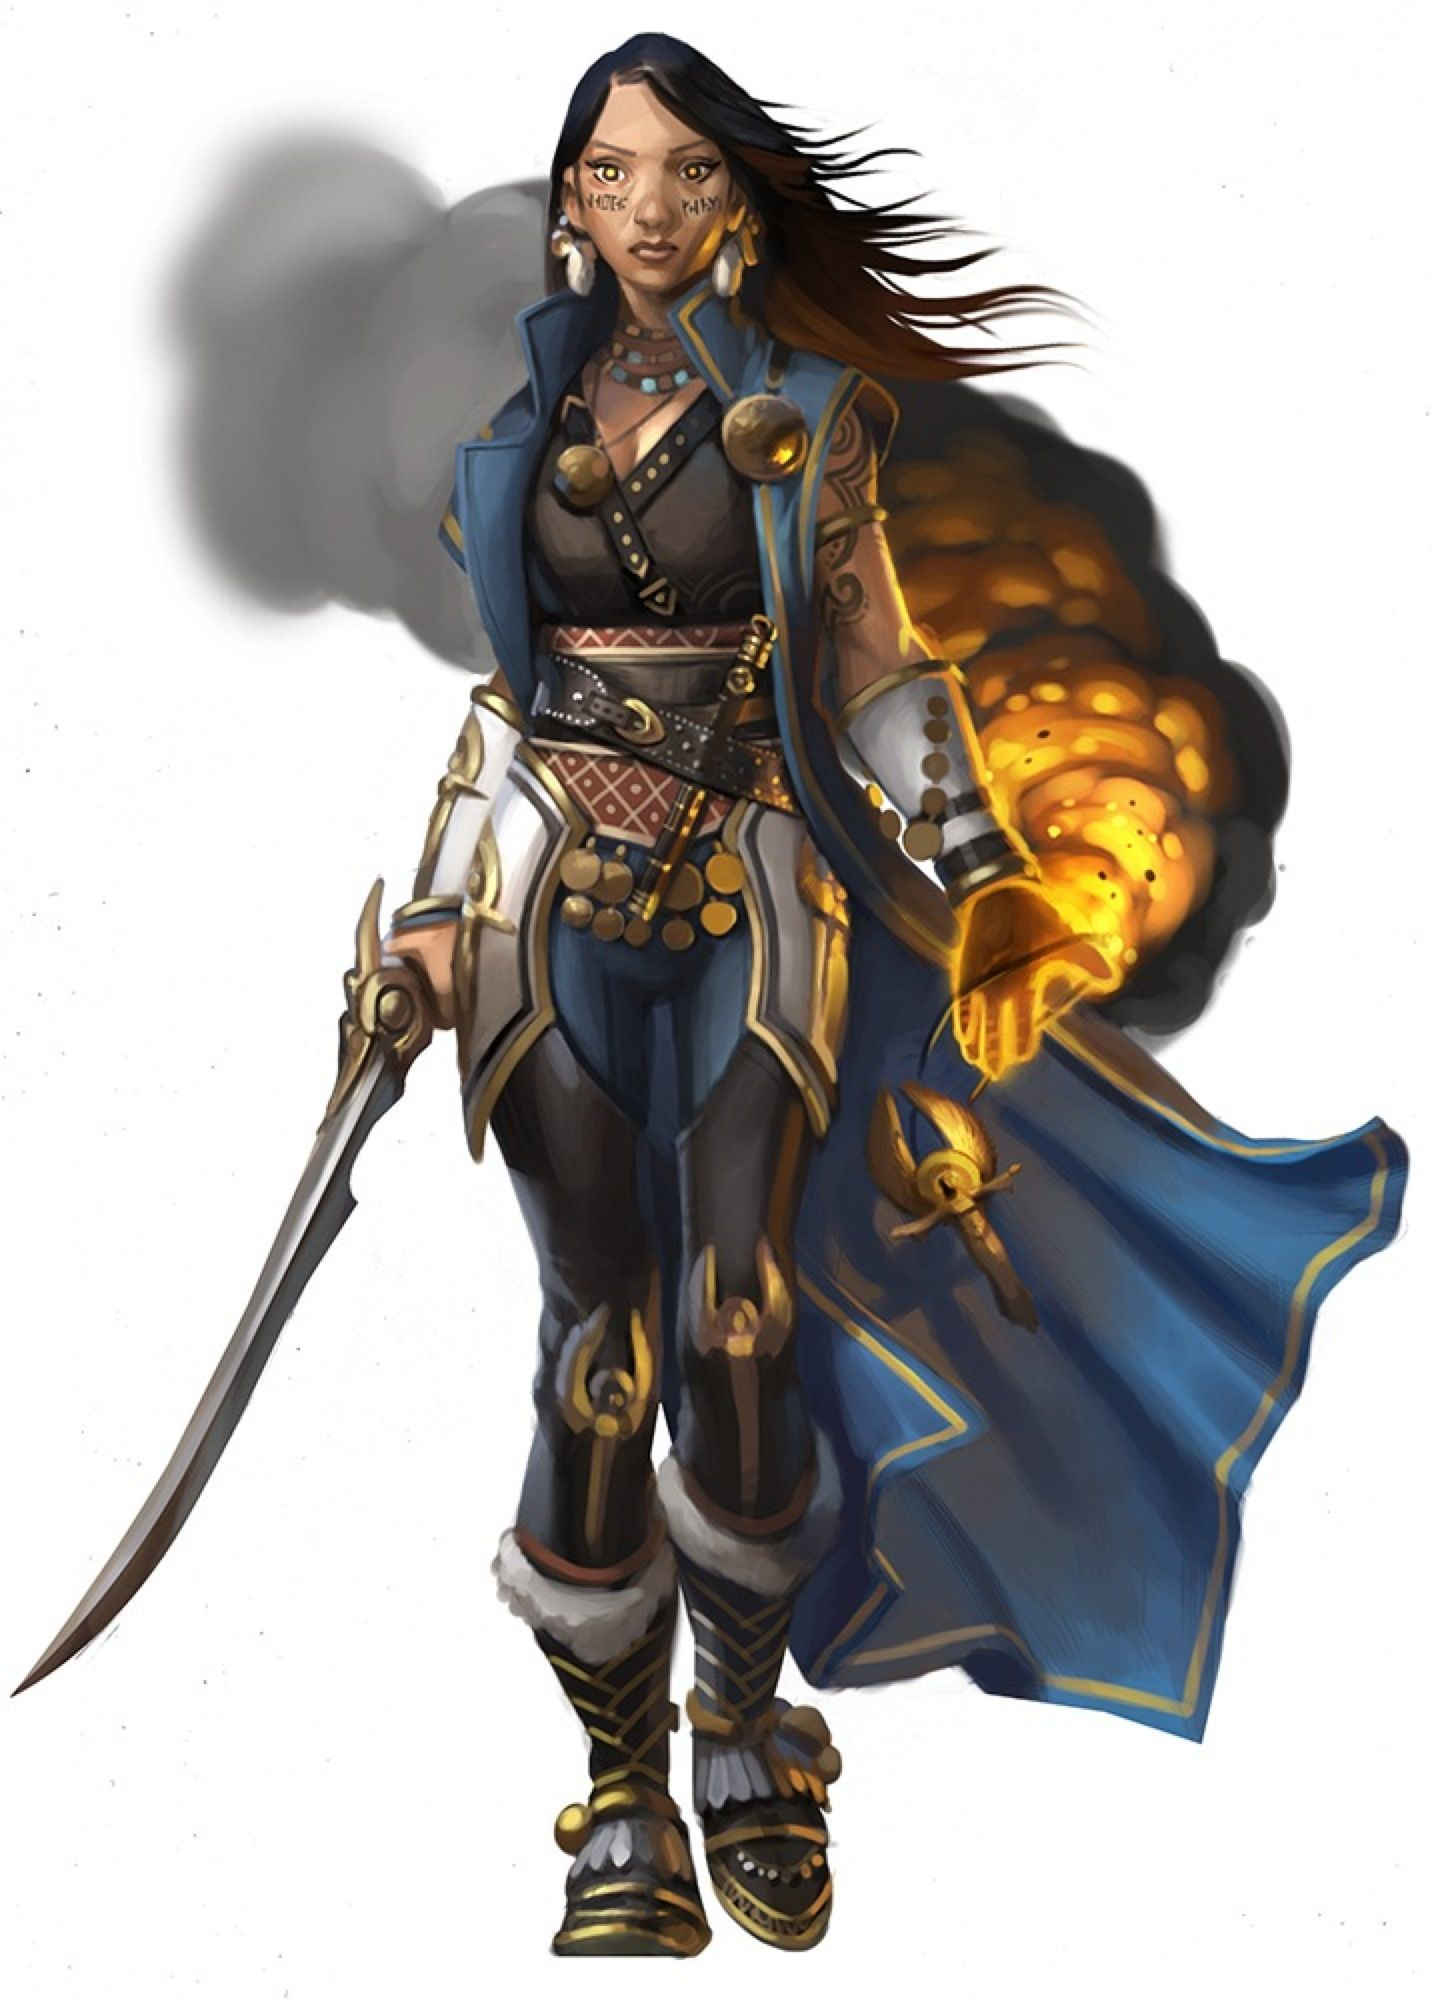 Pin by Laís De on Future DnD Character portraits, Dnd